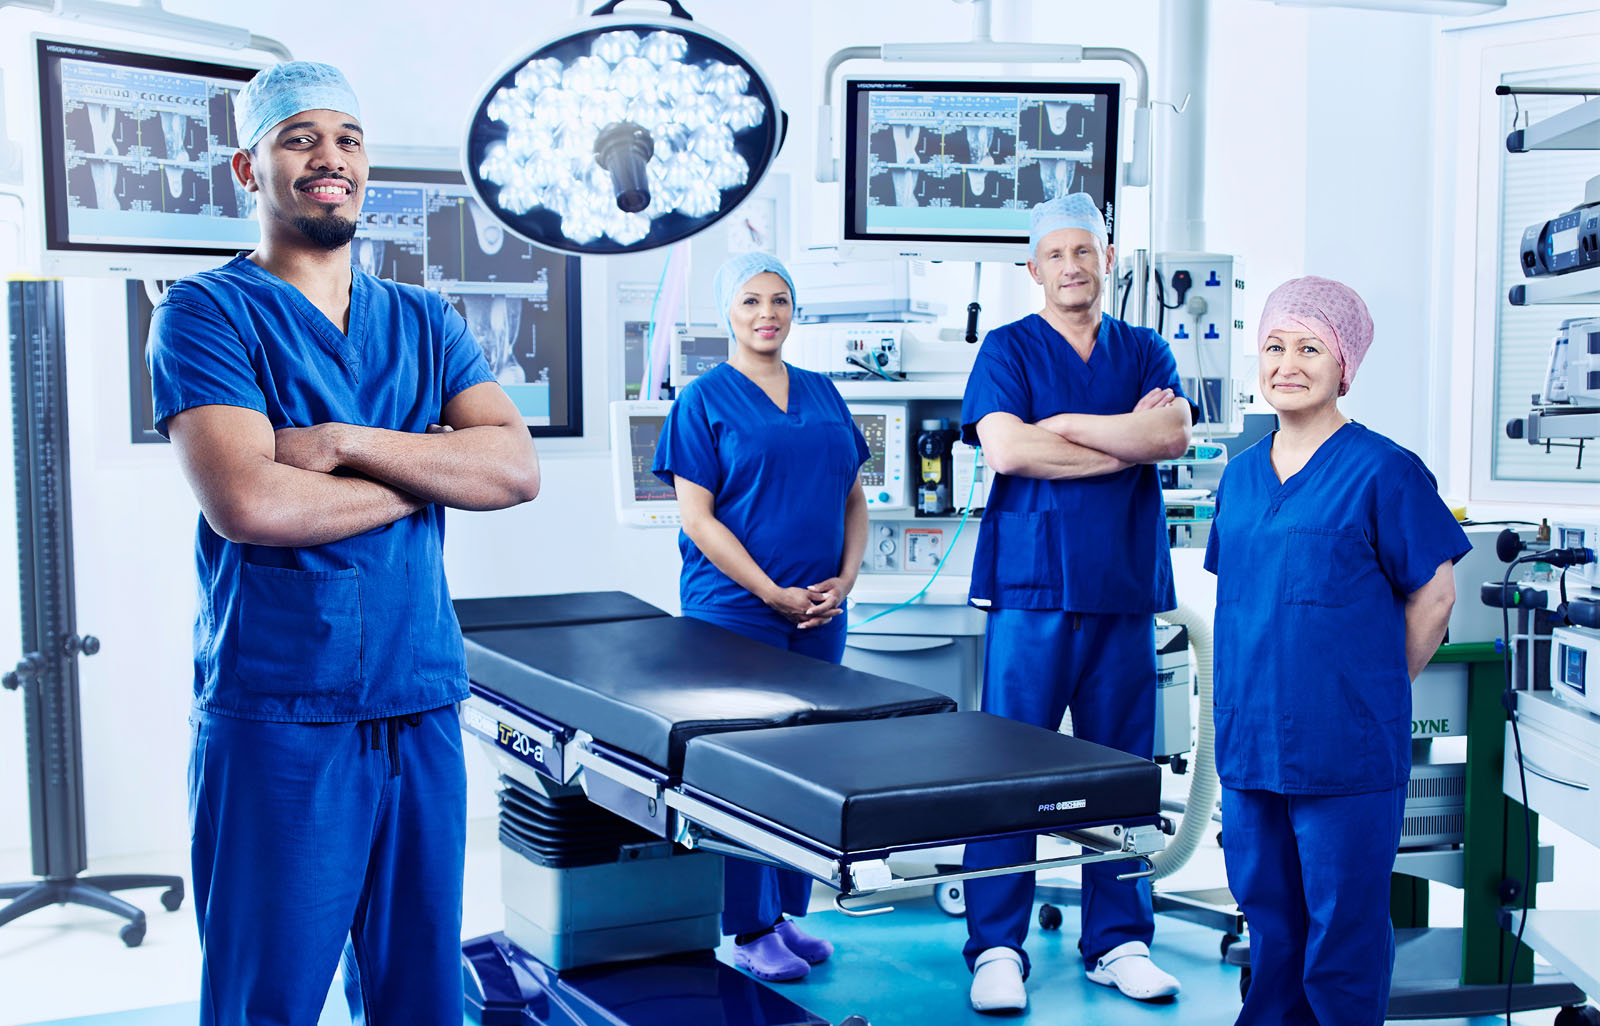 Surgeons in an operating theatre